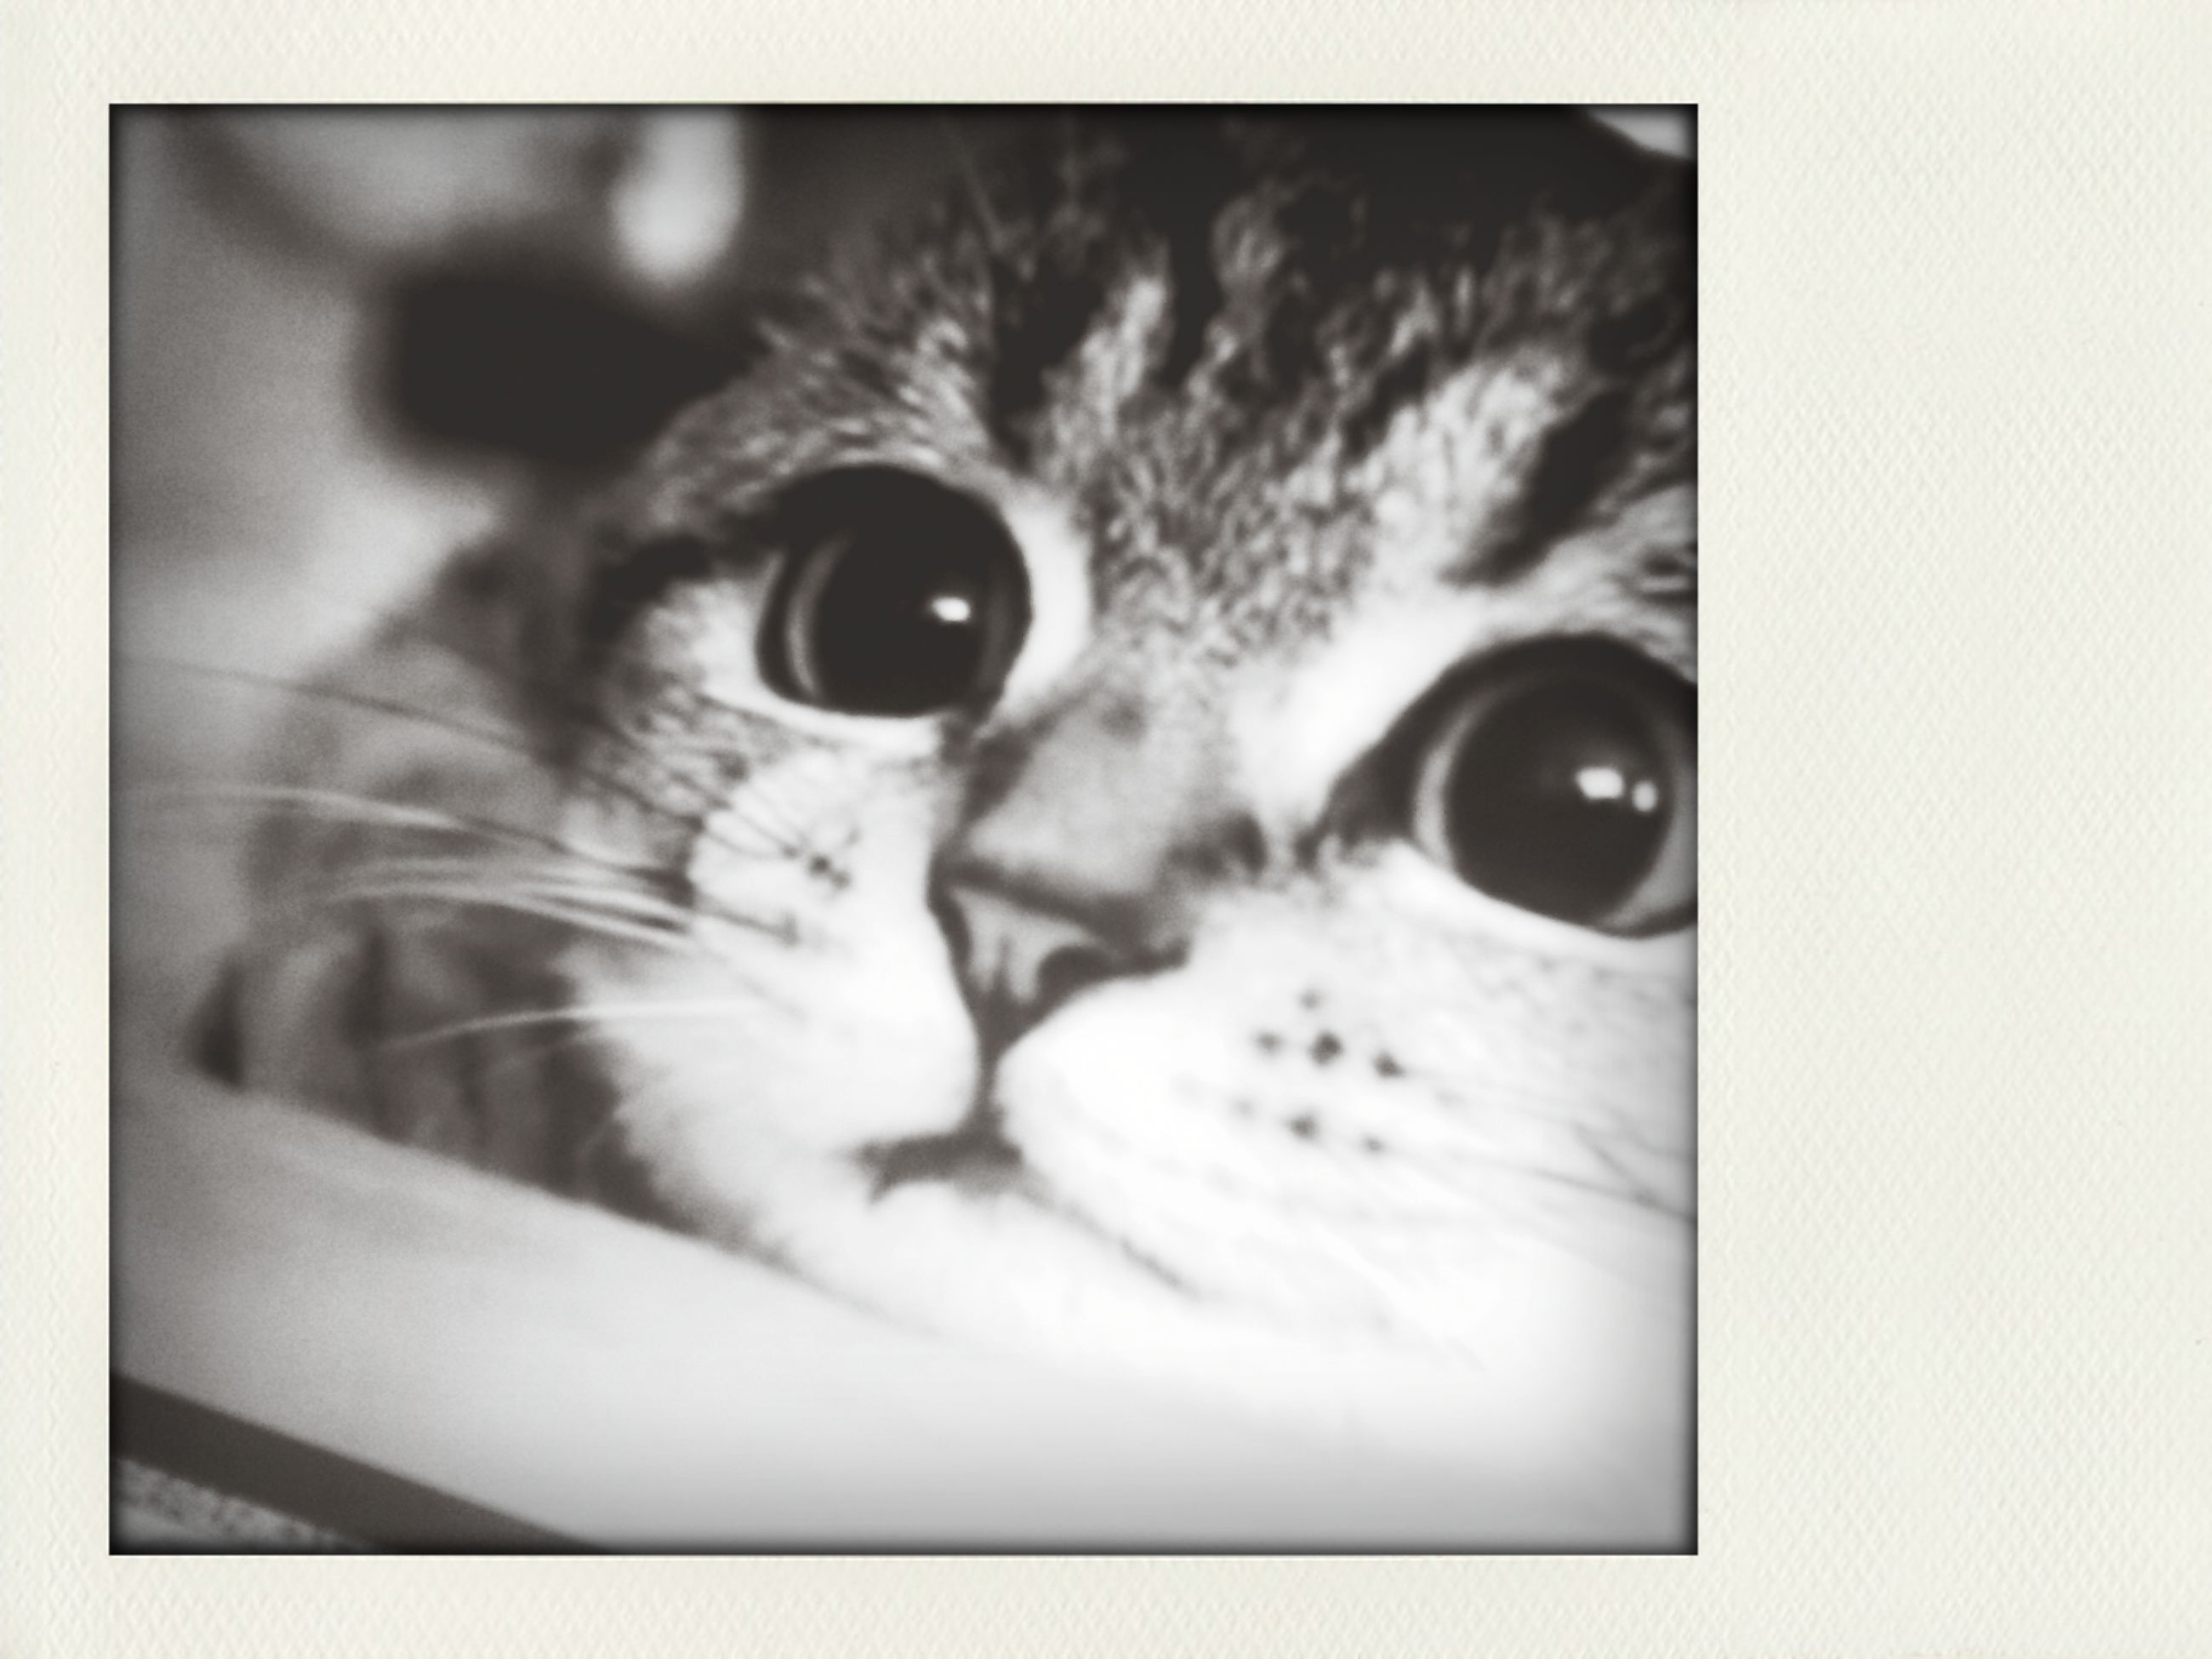 pets, one animal, domestic cat, animal themes, domestic animals, cat, indoors, feline, transfer print, looking at camera, portrait, close-up, whisker, mammal, auto post production filter, animal eye, animal head, staring, alertness, animal body part